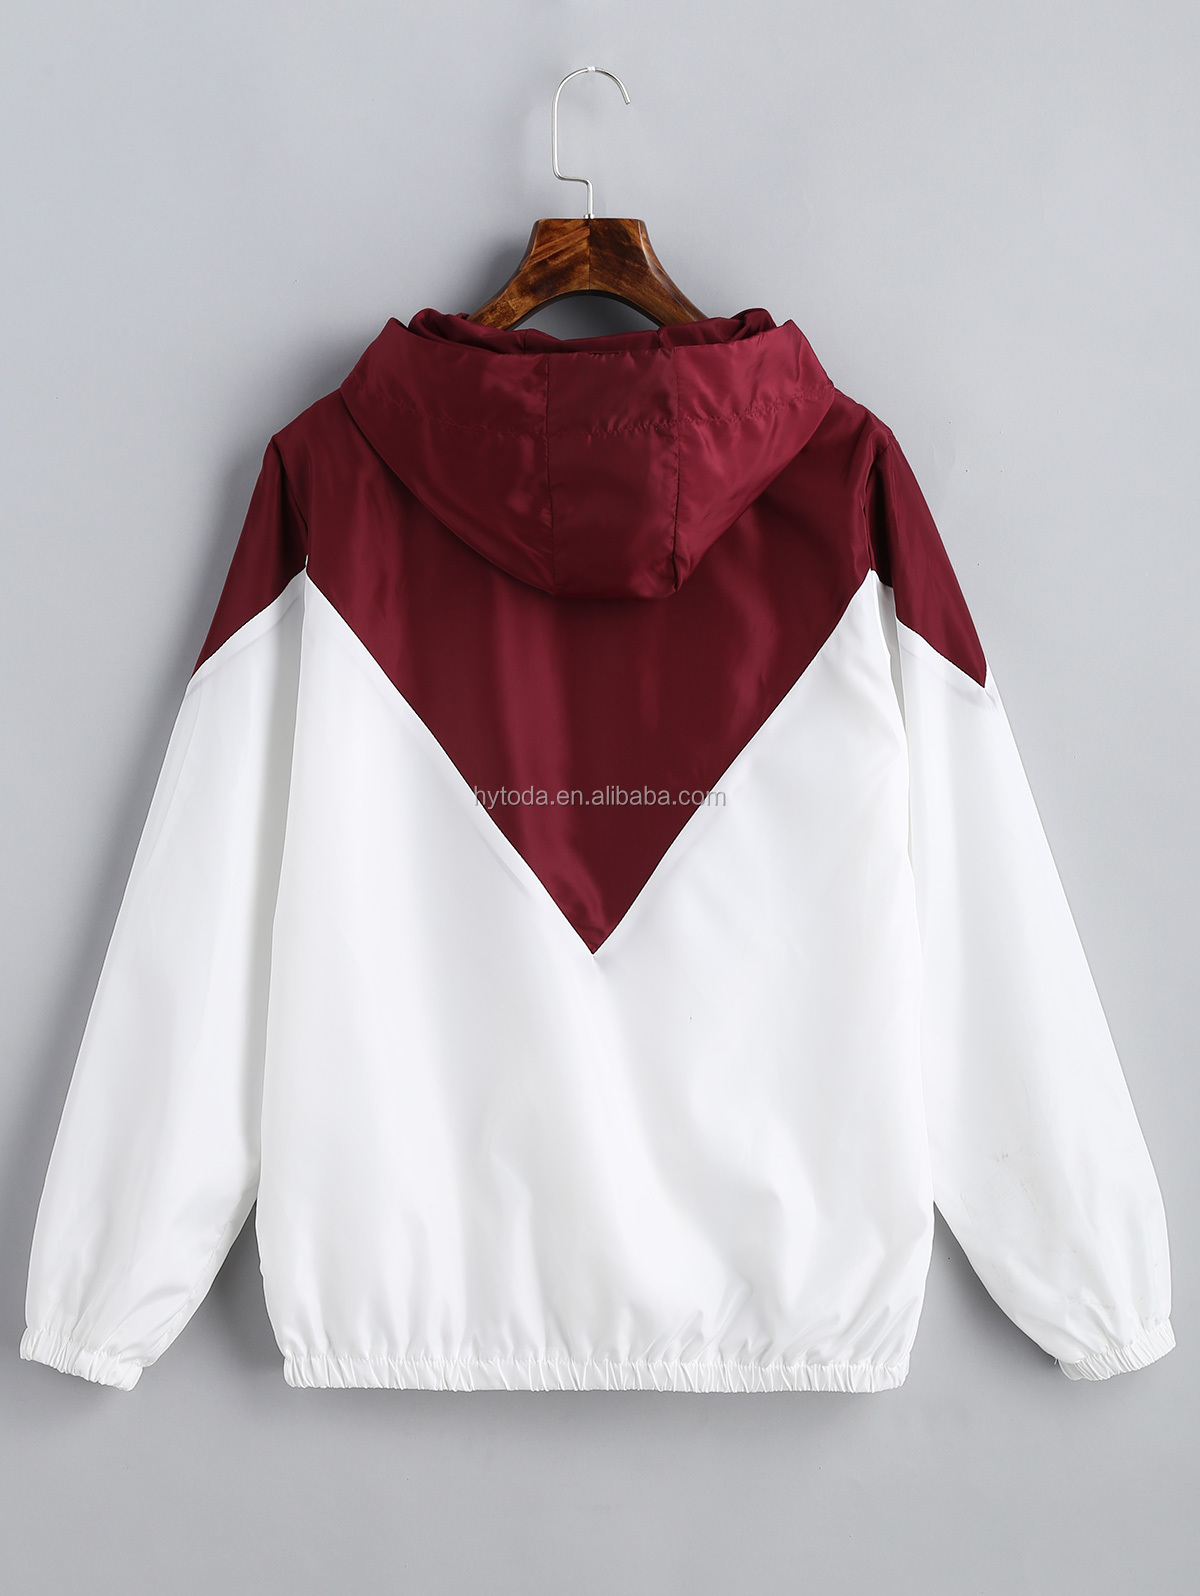 Girl fall jacket for windbreaker